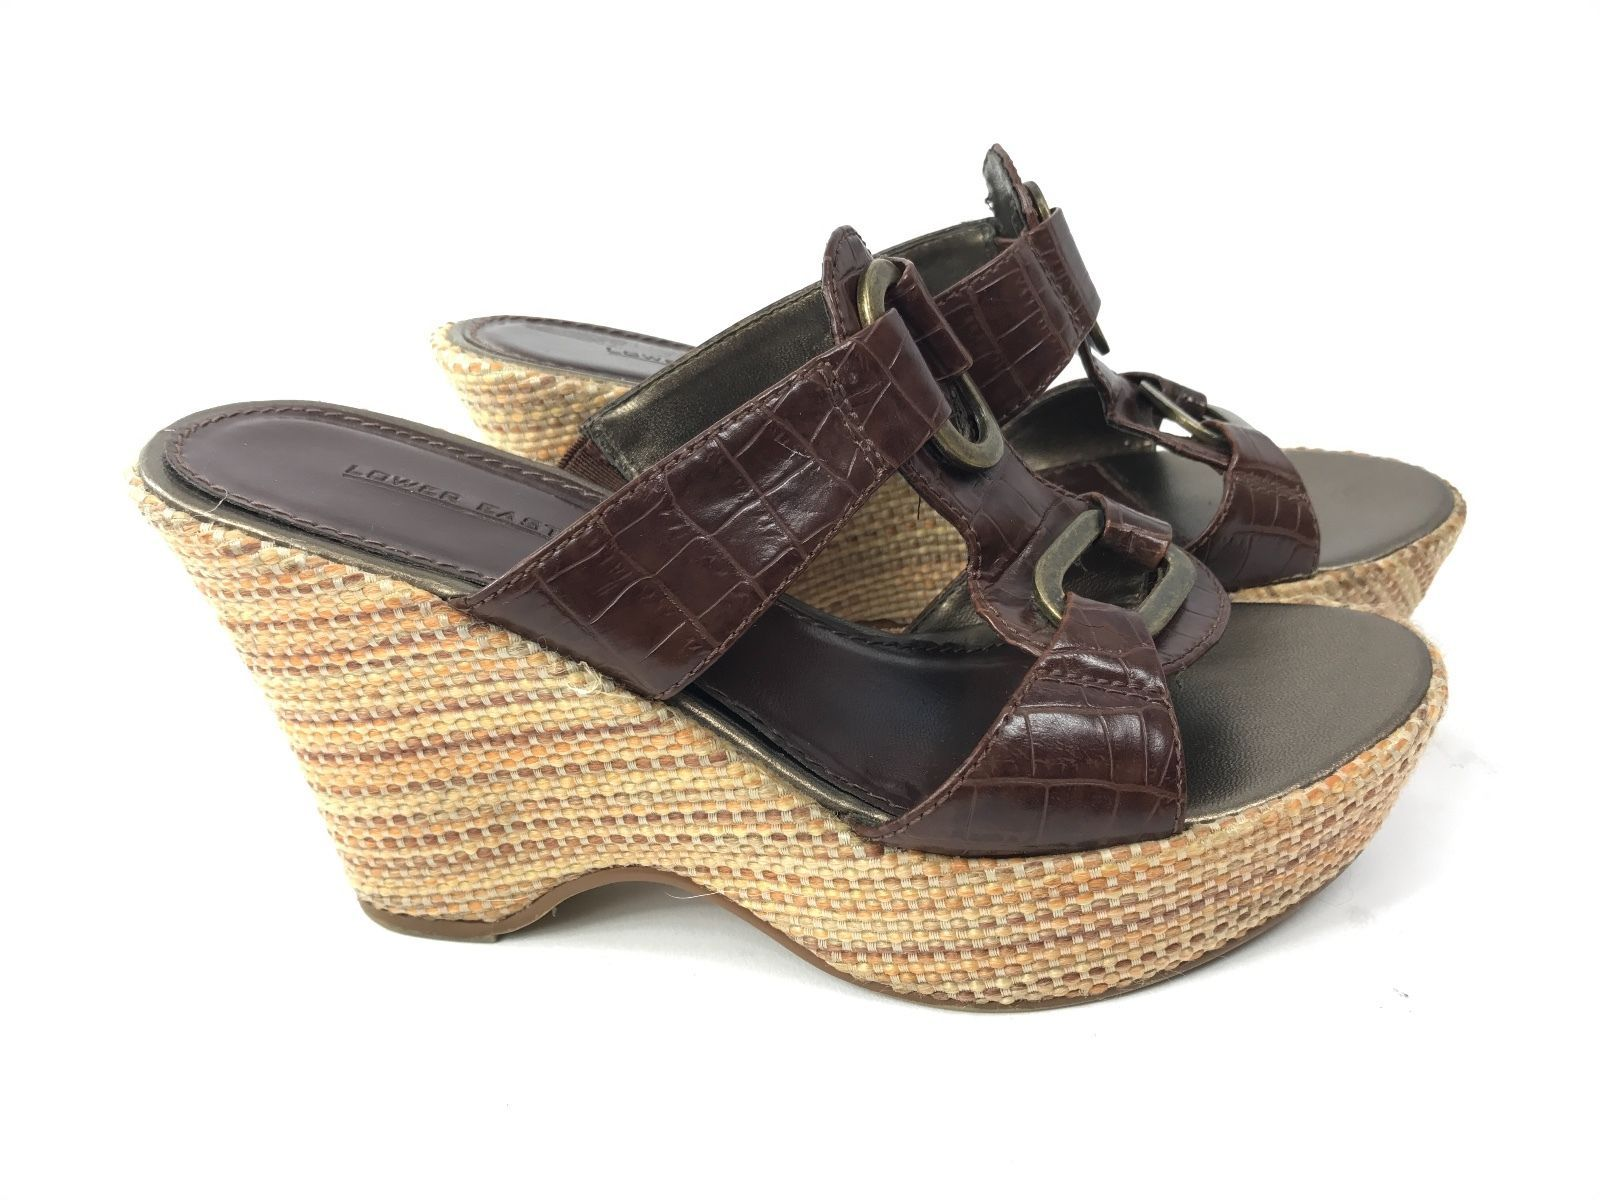 d55e4bbf6 Lower East Side Wedge Strapy Heels Size 6.5 and 50 similar items. S l1600